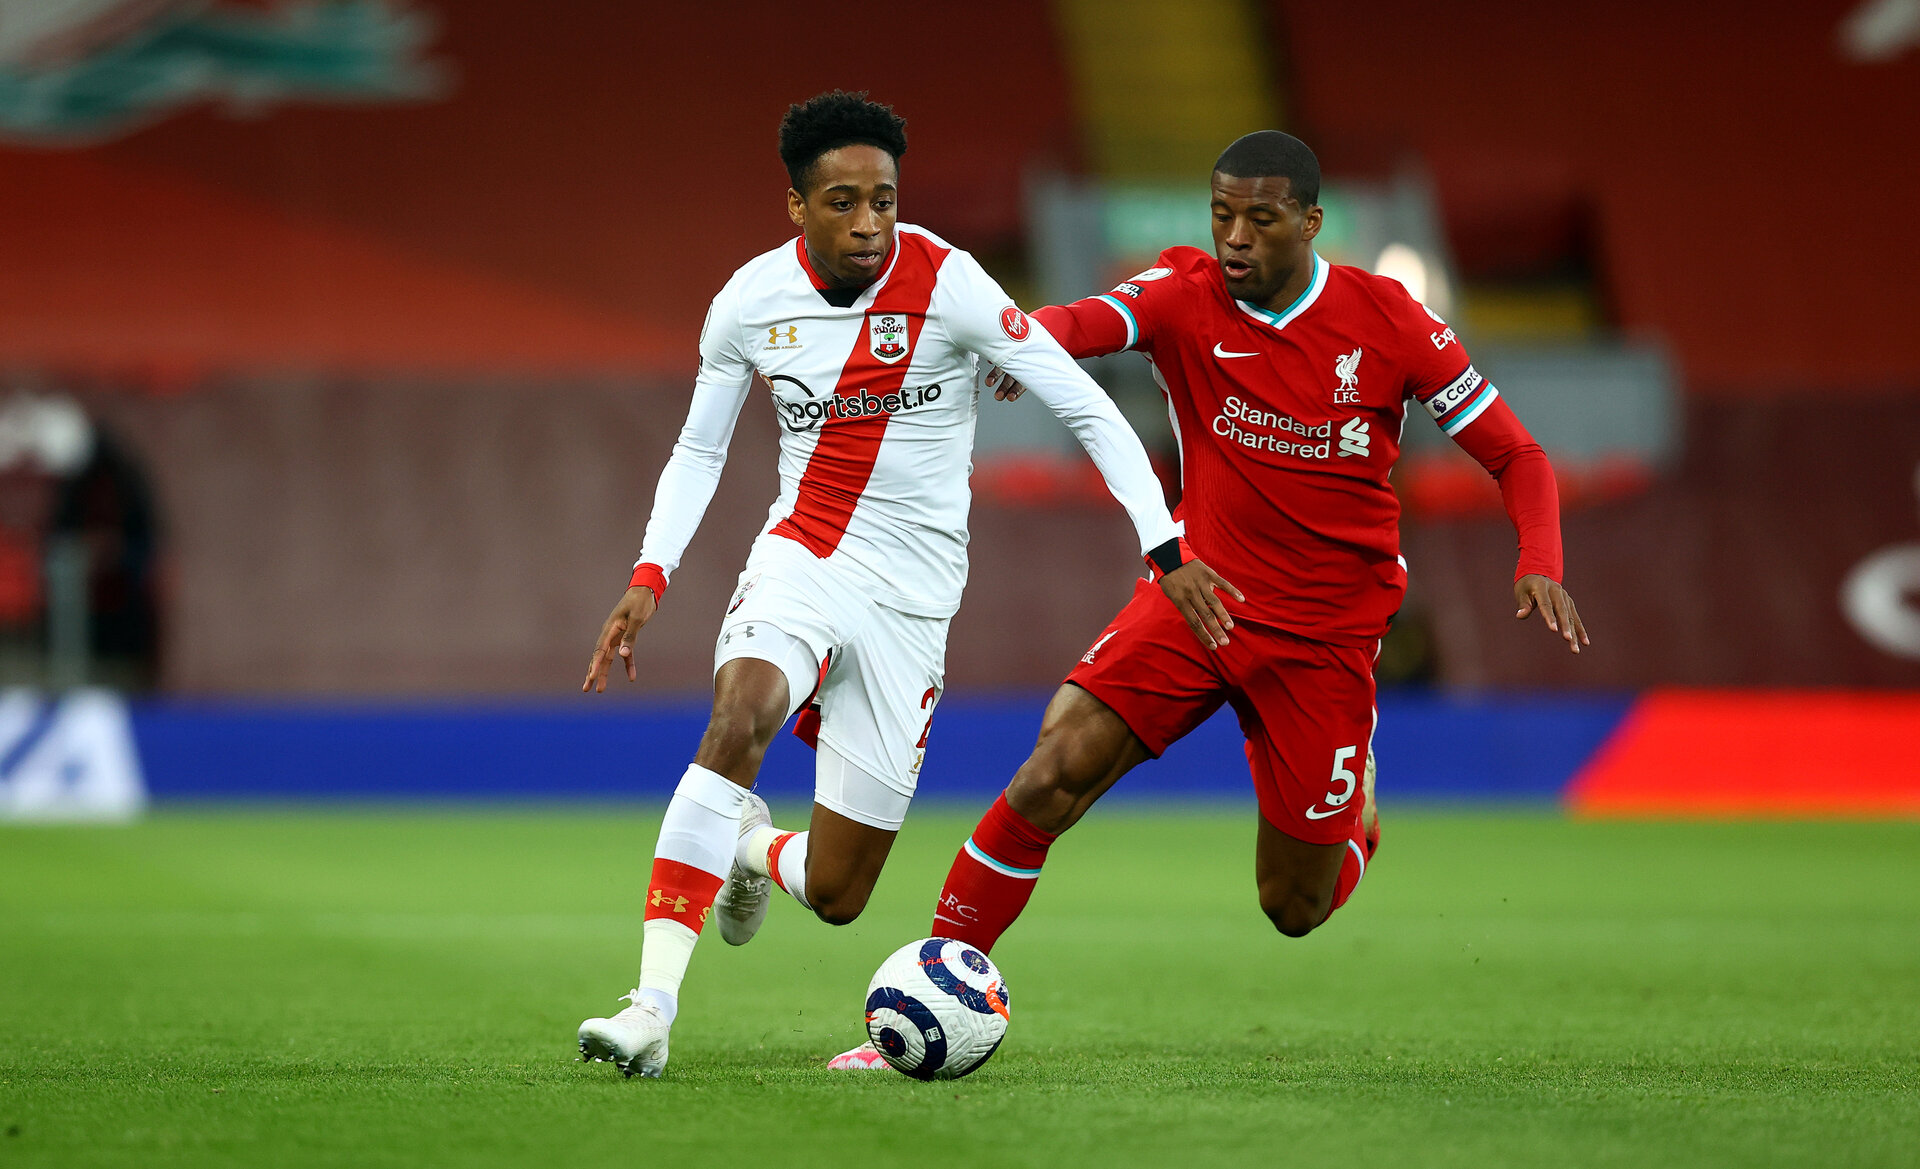 LIVERPOOL, ENGLAND - MAY 08: Kyle Walker-Peters(L) of Southampton and Georginio Wijnaldum(R) of Liverpool during the Premier League match between Liverpool and Southampton at Anfield on May 08, 2021 in Liverpool, England. Sporting stadiums around the UK remain under strict restrictions due to the Coronavirus Pandemic as Government social distancing laws prohibit fans inside venues resulting in games being played behind closed doors. (Photo by Matt Watson/Southampton FC via Getty Images)